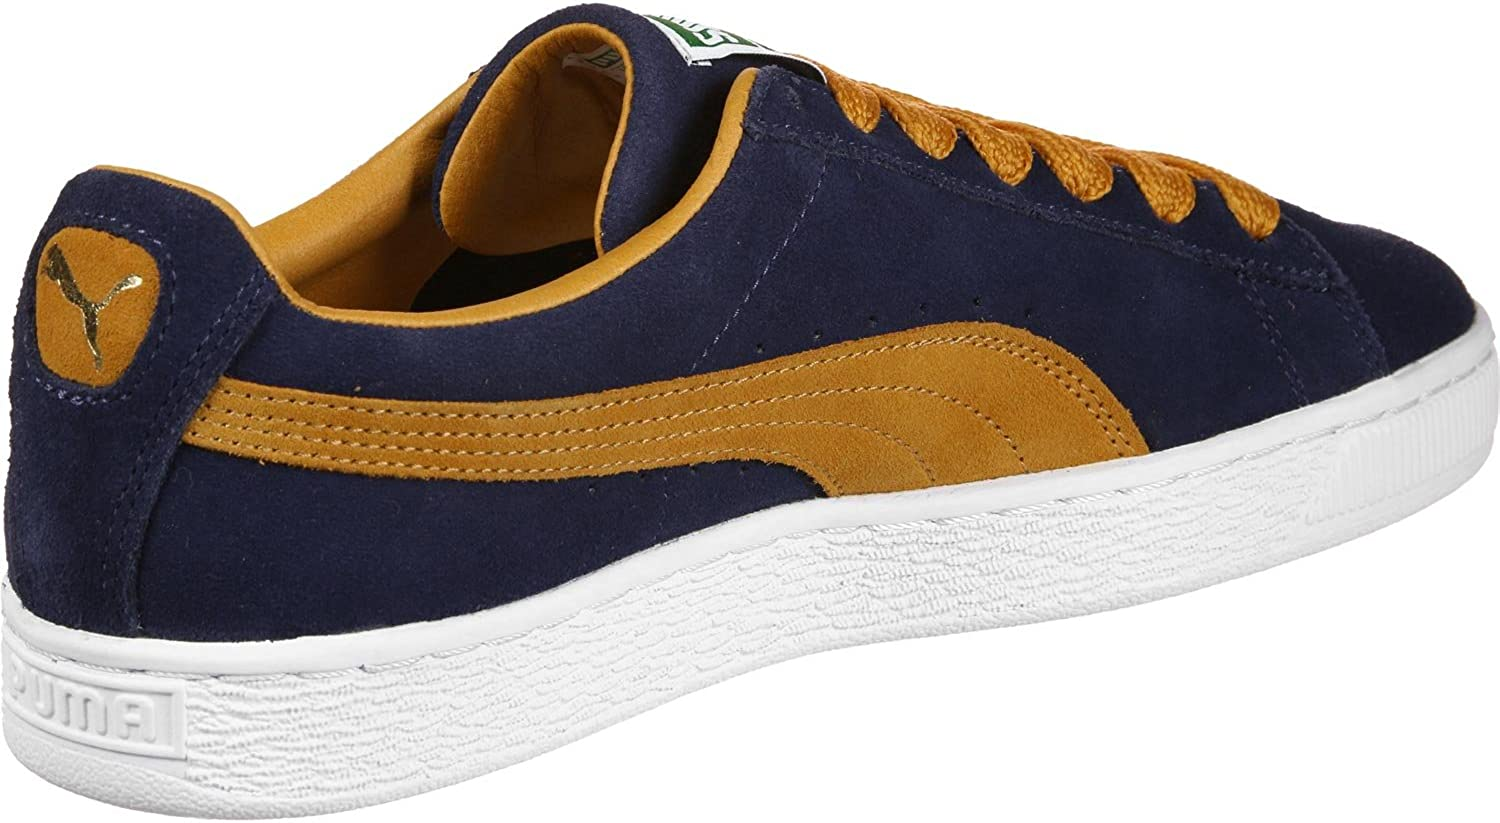 Puma Suede Super chaussures peacoatinca gold